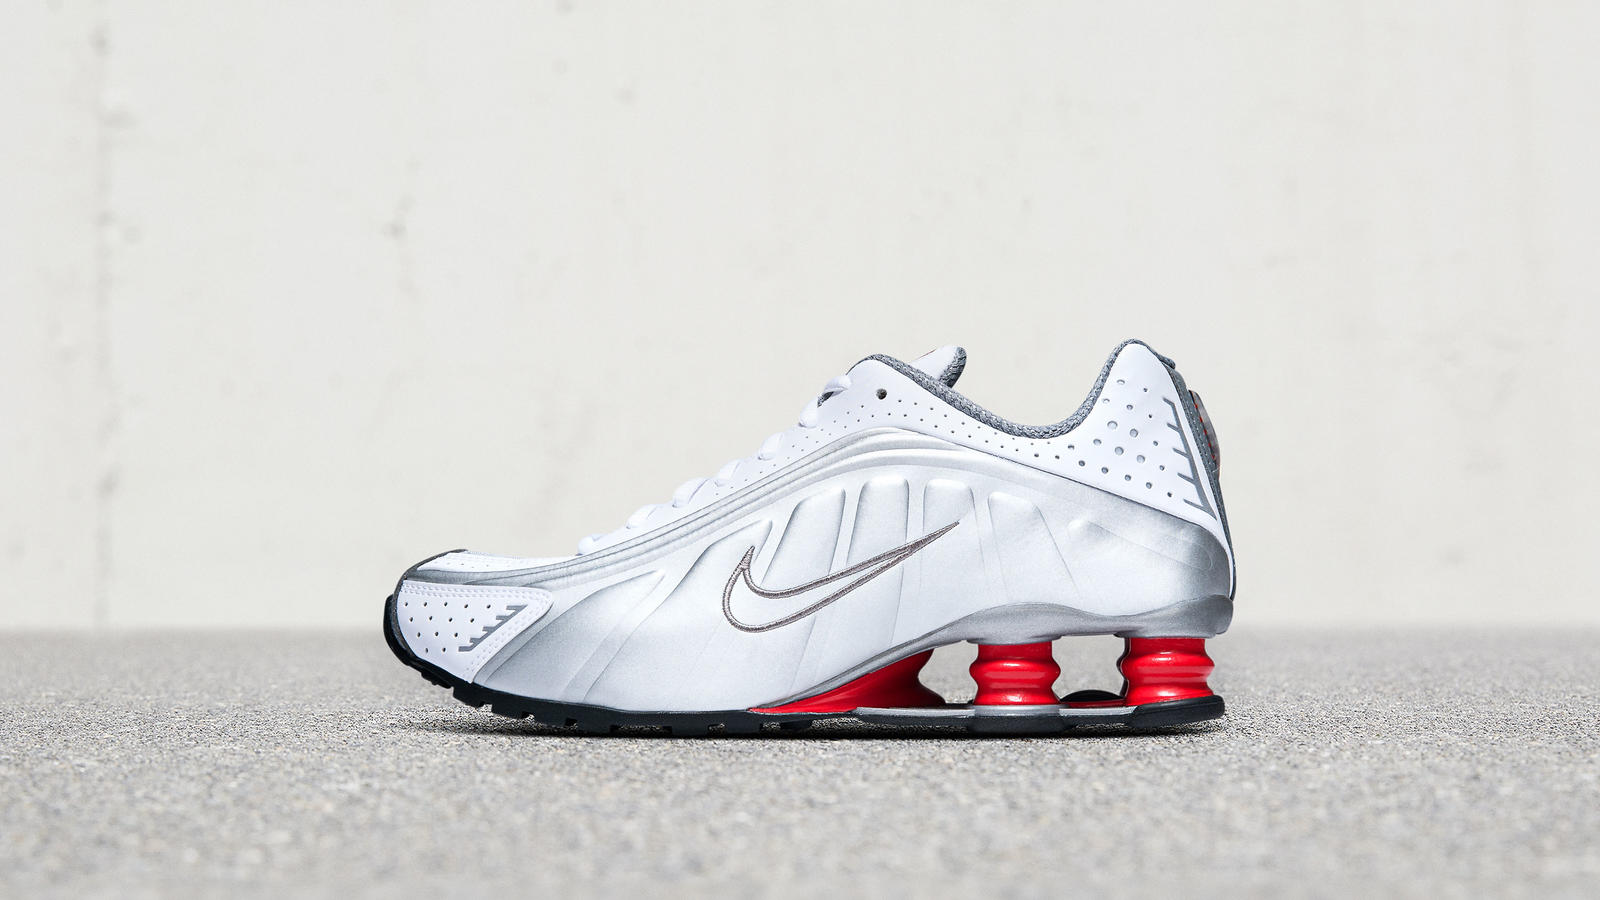 ff4e5bebeea9 How to Get the Nike Shox R4 0